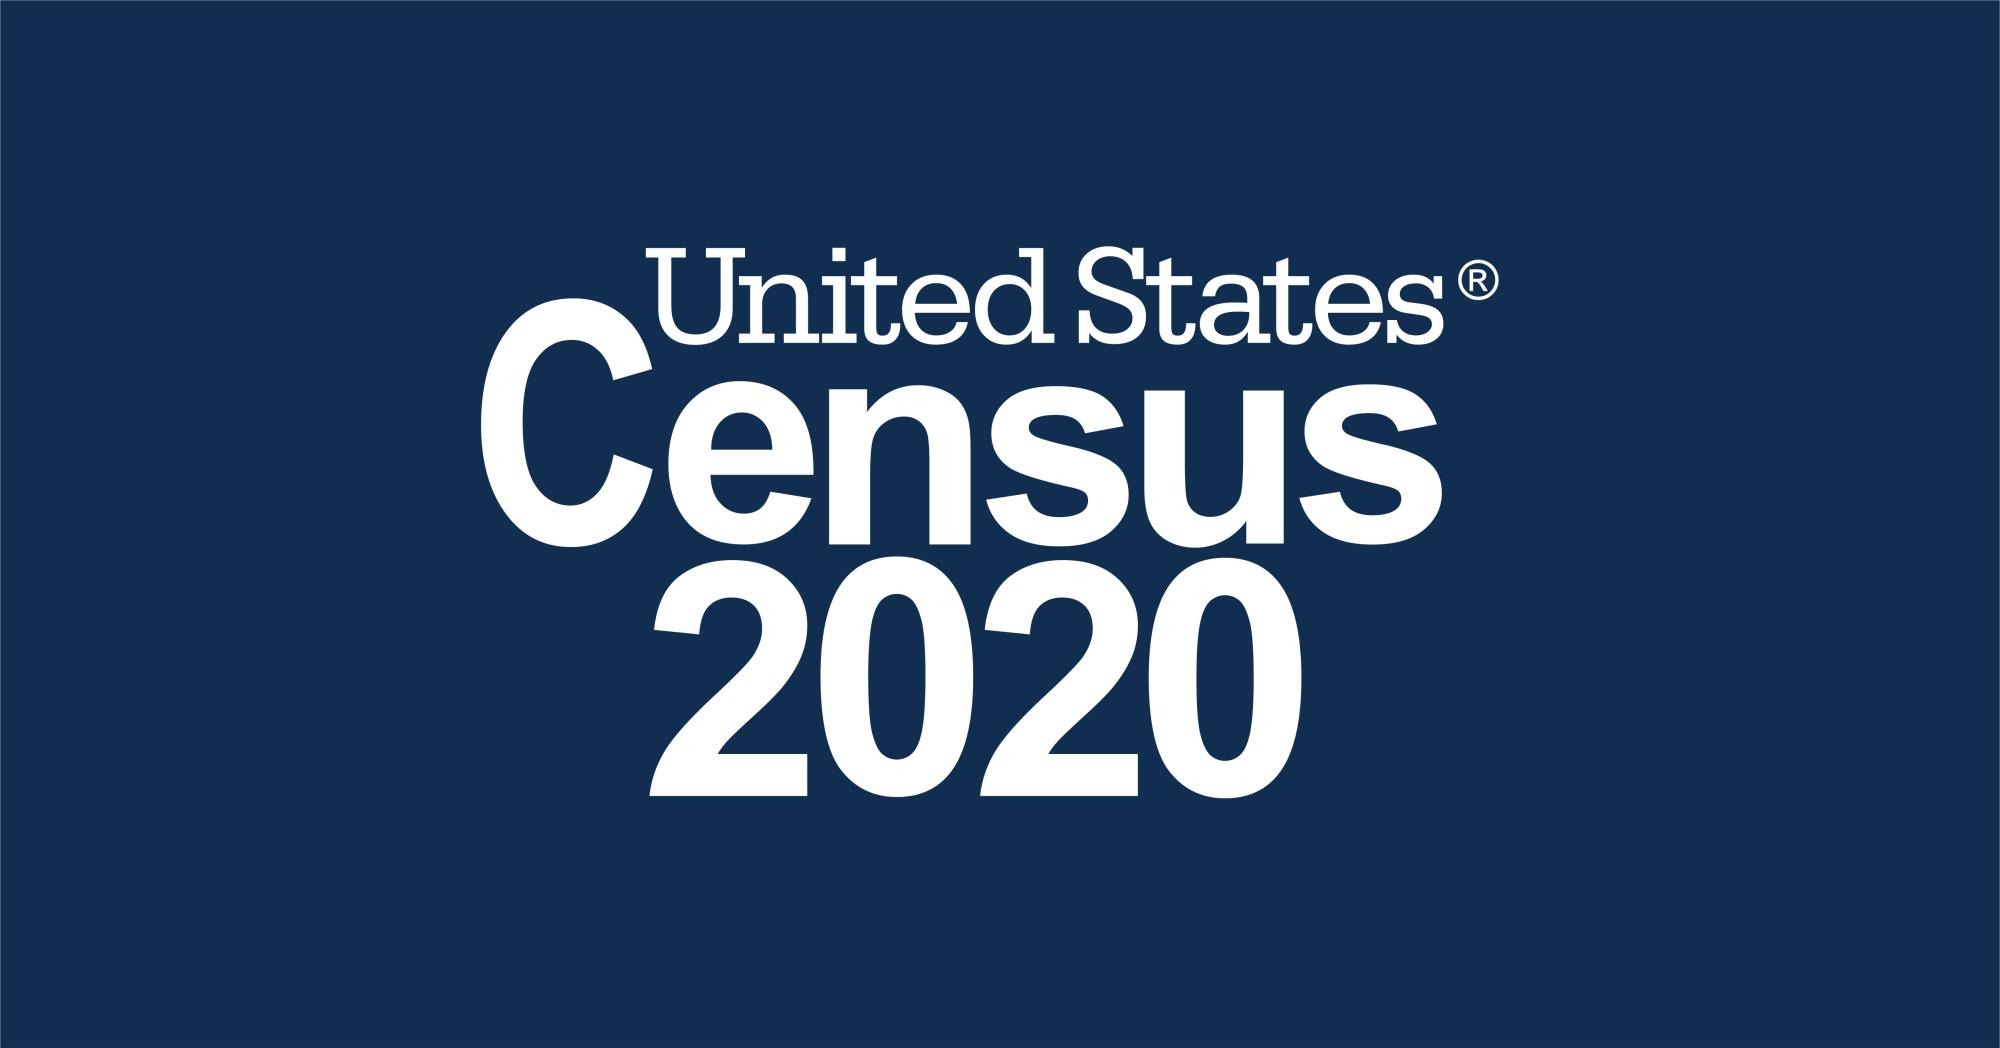 Be Counted in the US Census